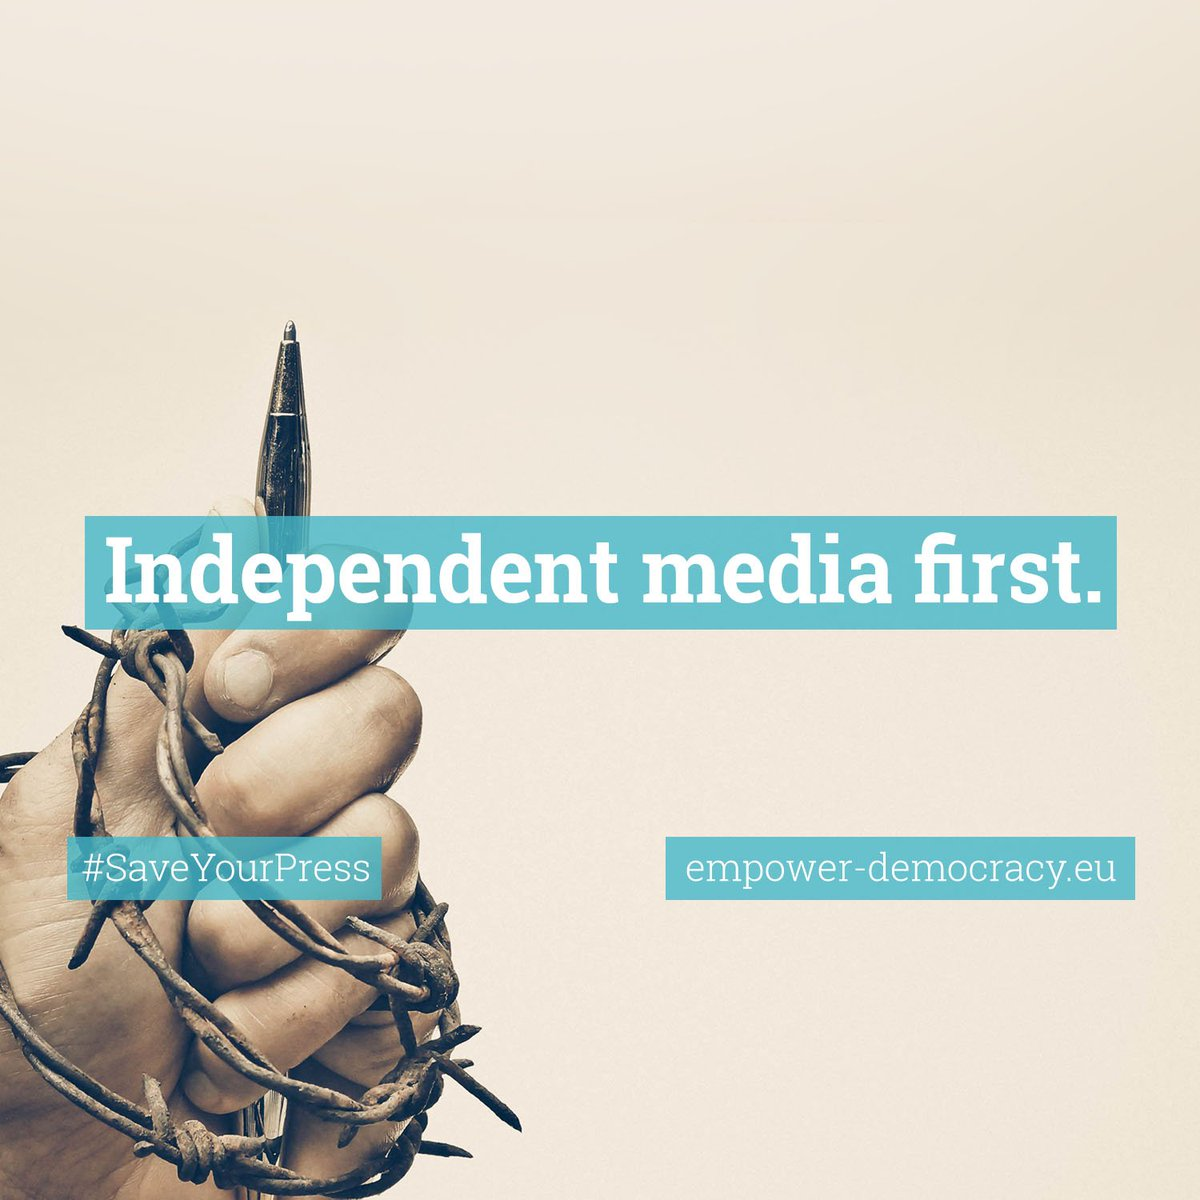 #SaveYourPress to keep the news coming! #copyright  http://www. empower-democracy.eu  &nbsp;   @RELXGroupHQ @ringier_ag<br>http://pic.twitter.com/tgqaBF9bhG